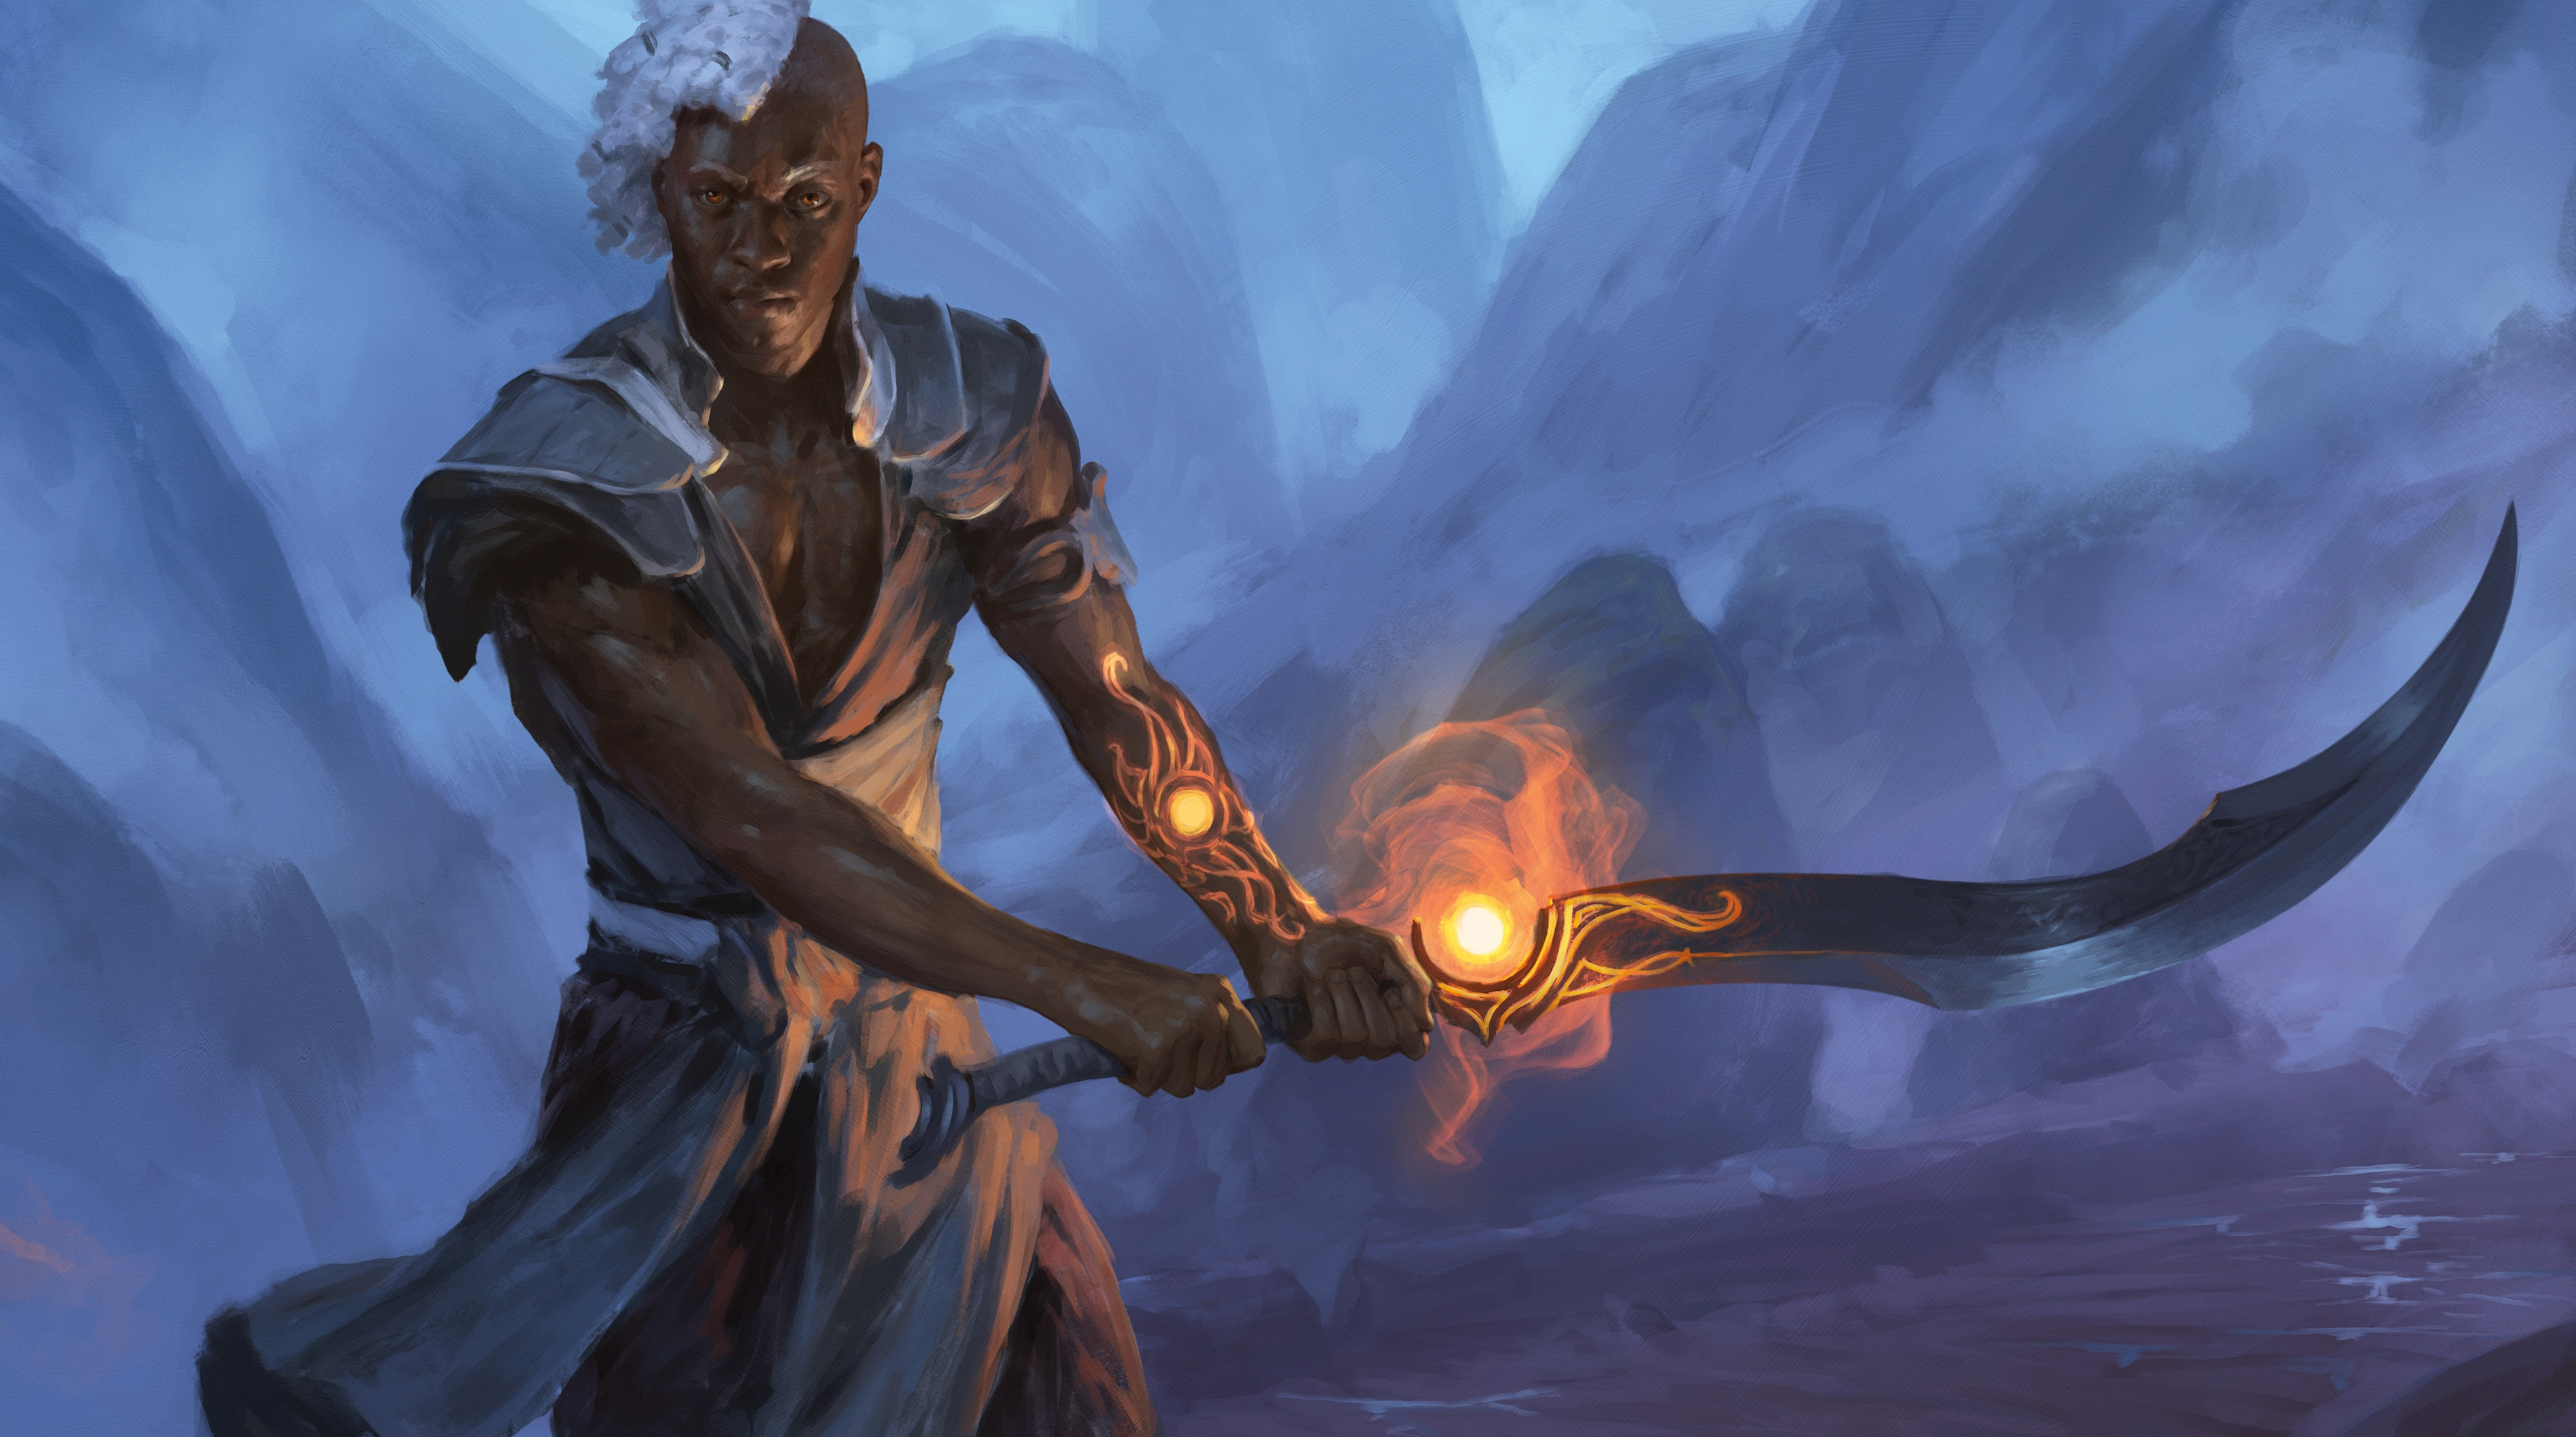 Here's an exclusive look at the upcoming Magic: The Gathering Commander Legends decklists screenshot